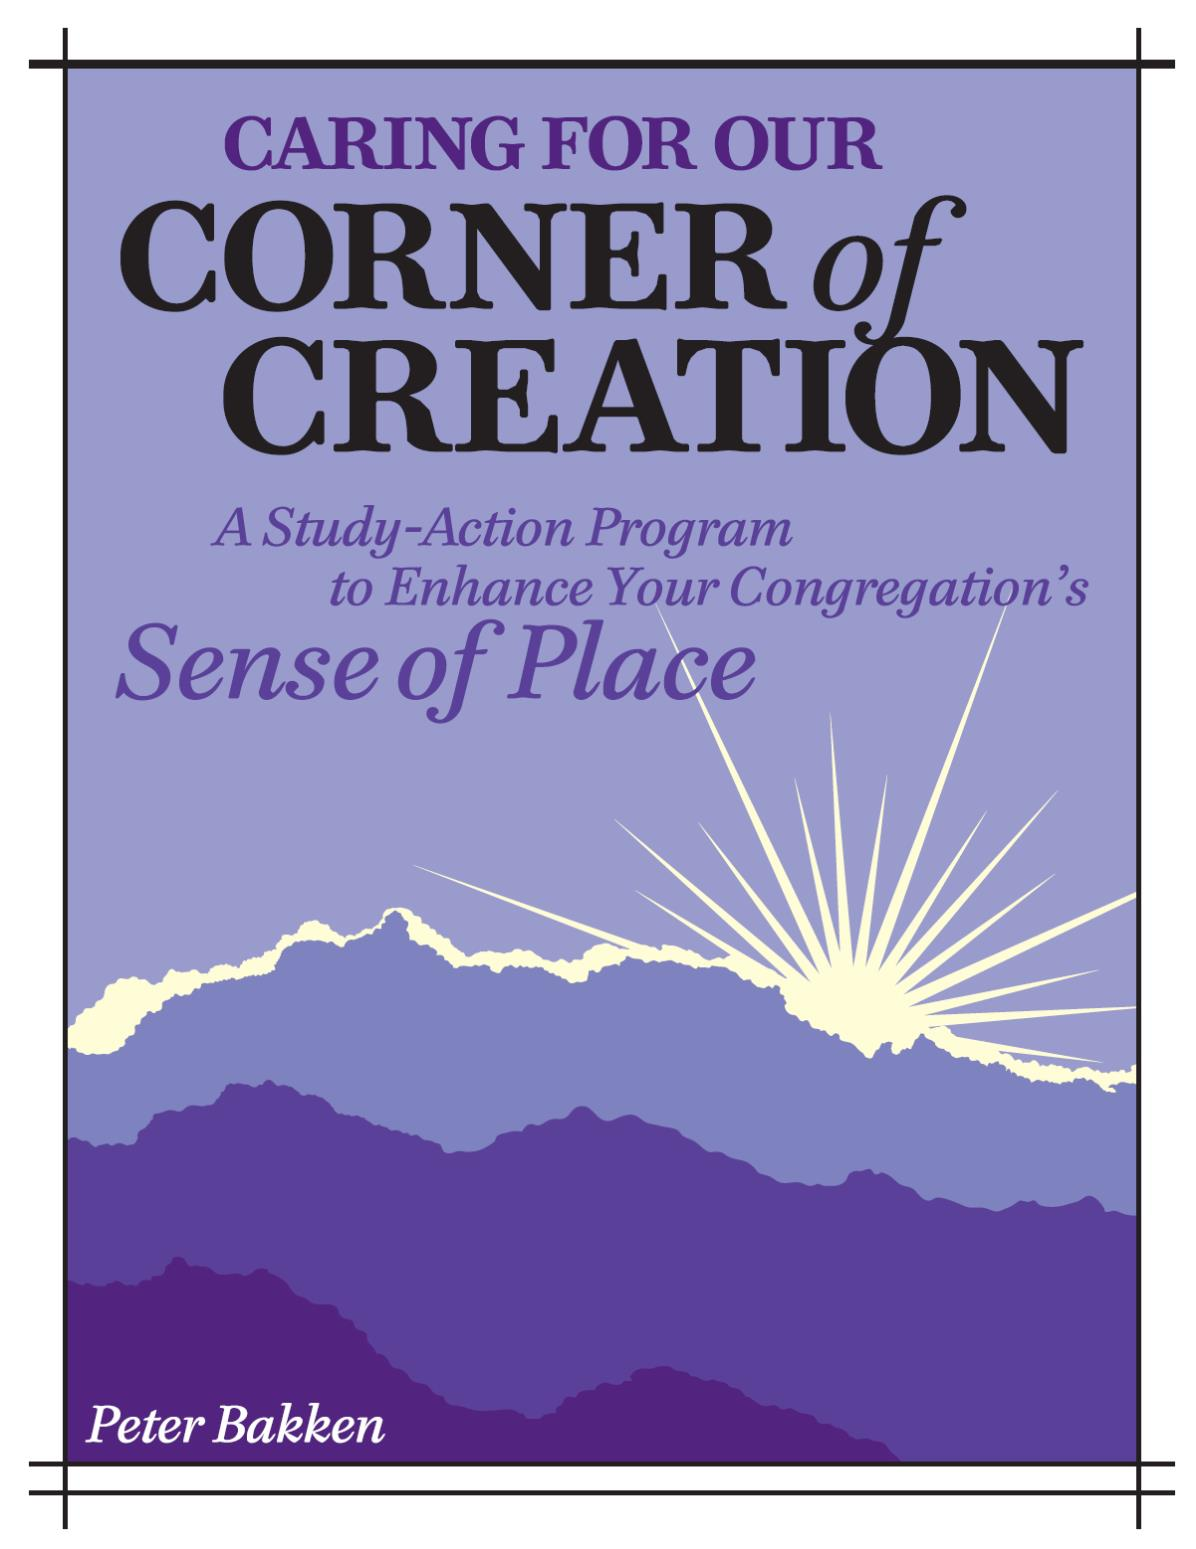 Caring for Our Corner of Creation